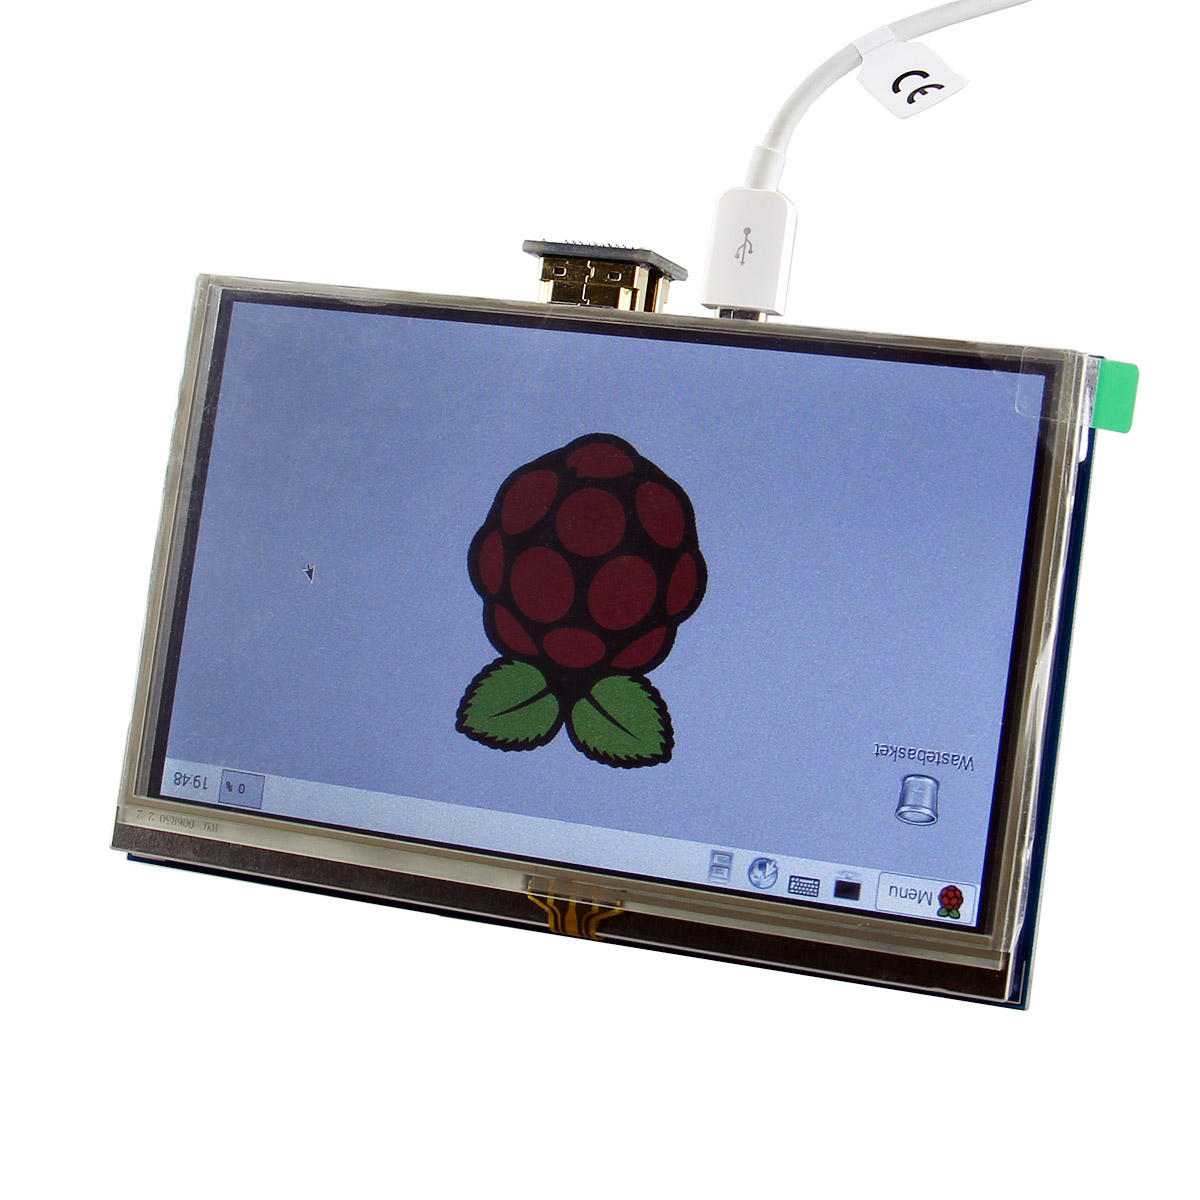 5 Inch HDMI TFT LCD Touch Screen For Raspberry PI 2 Model B / B+ / A+ / B